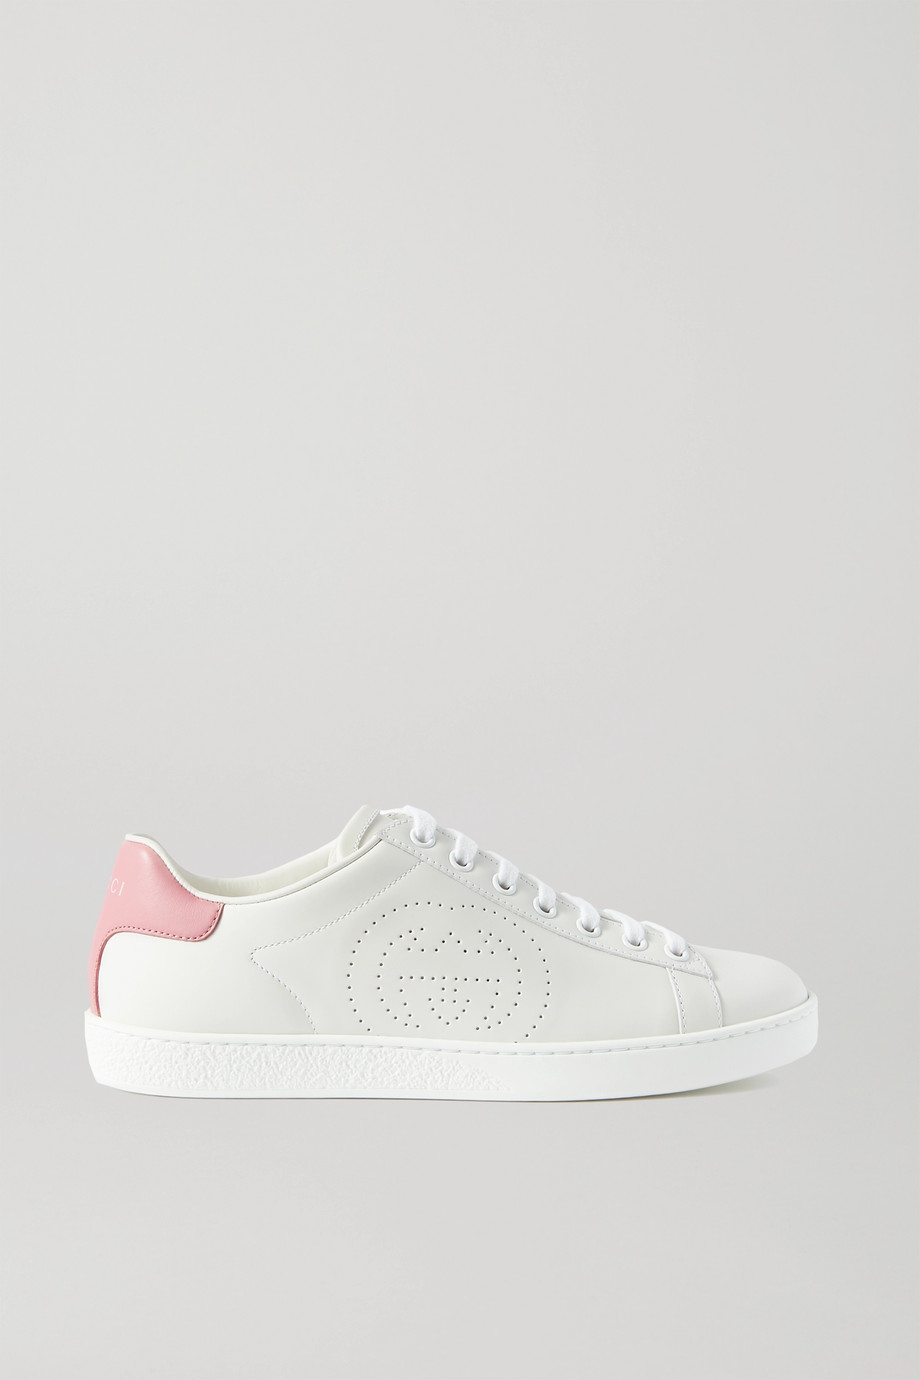 GUCCI + NET SUSTAIN Ace leather sneakers